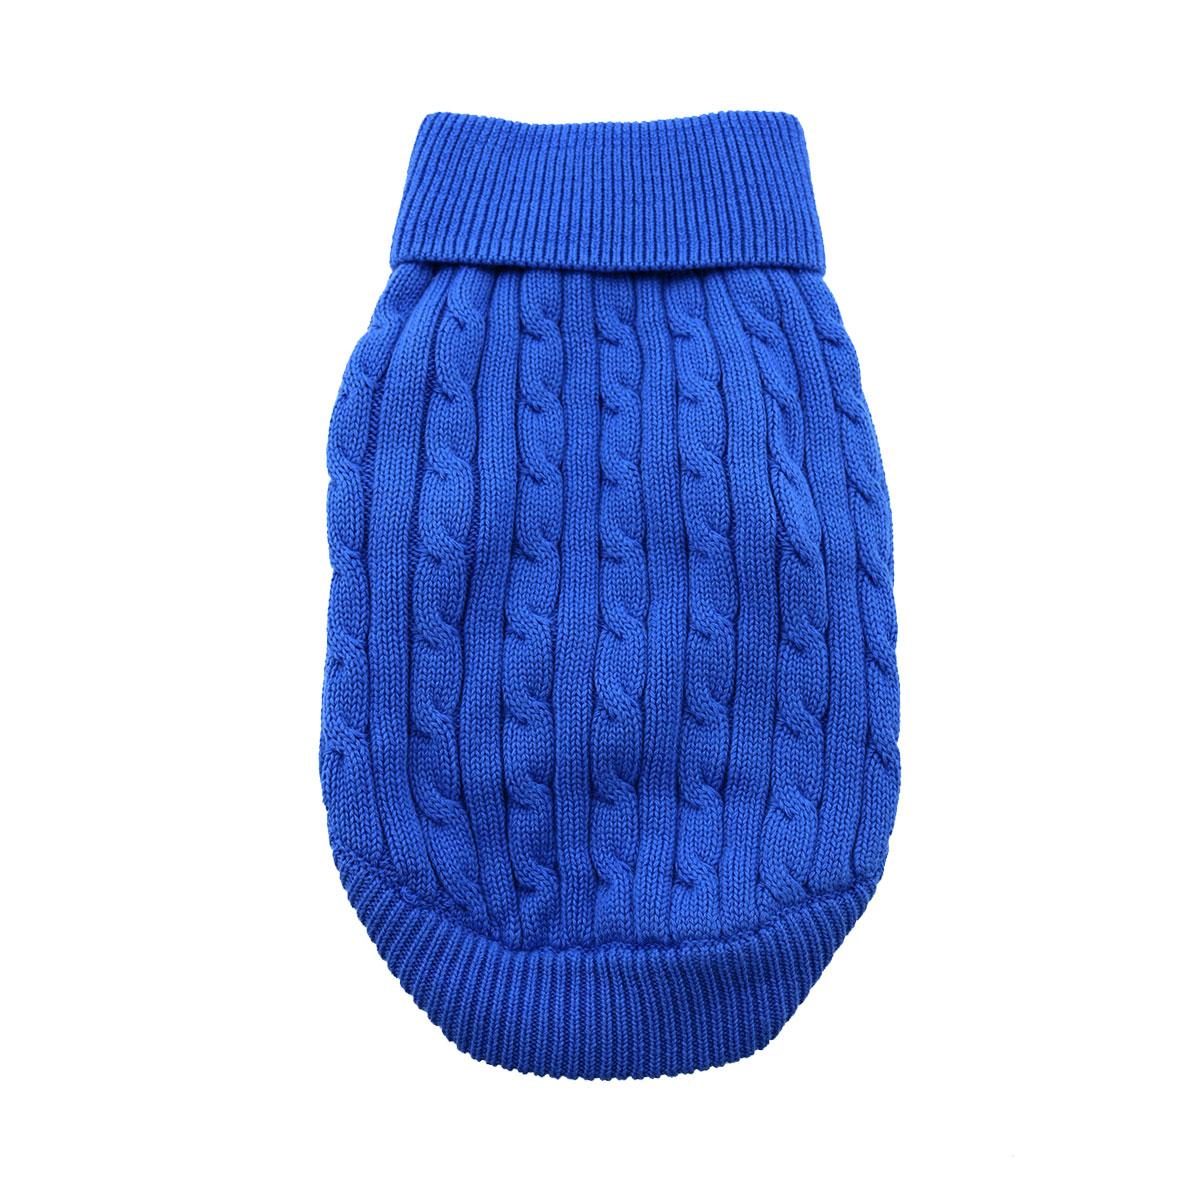 Doggie Design Cotton Dog Sweater, Cable Knit Riverside Blue, XX-Small